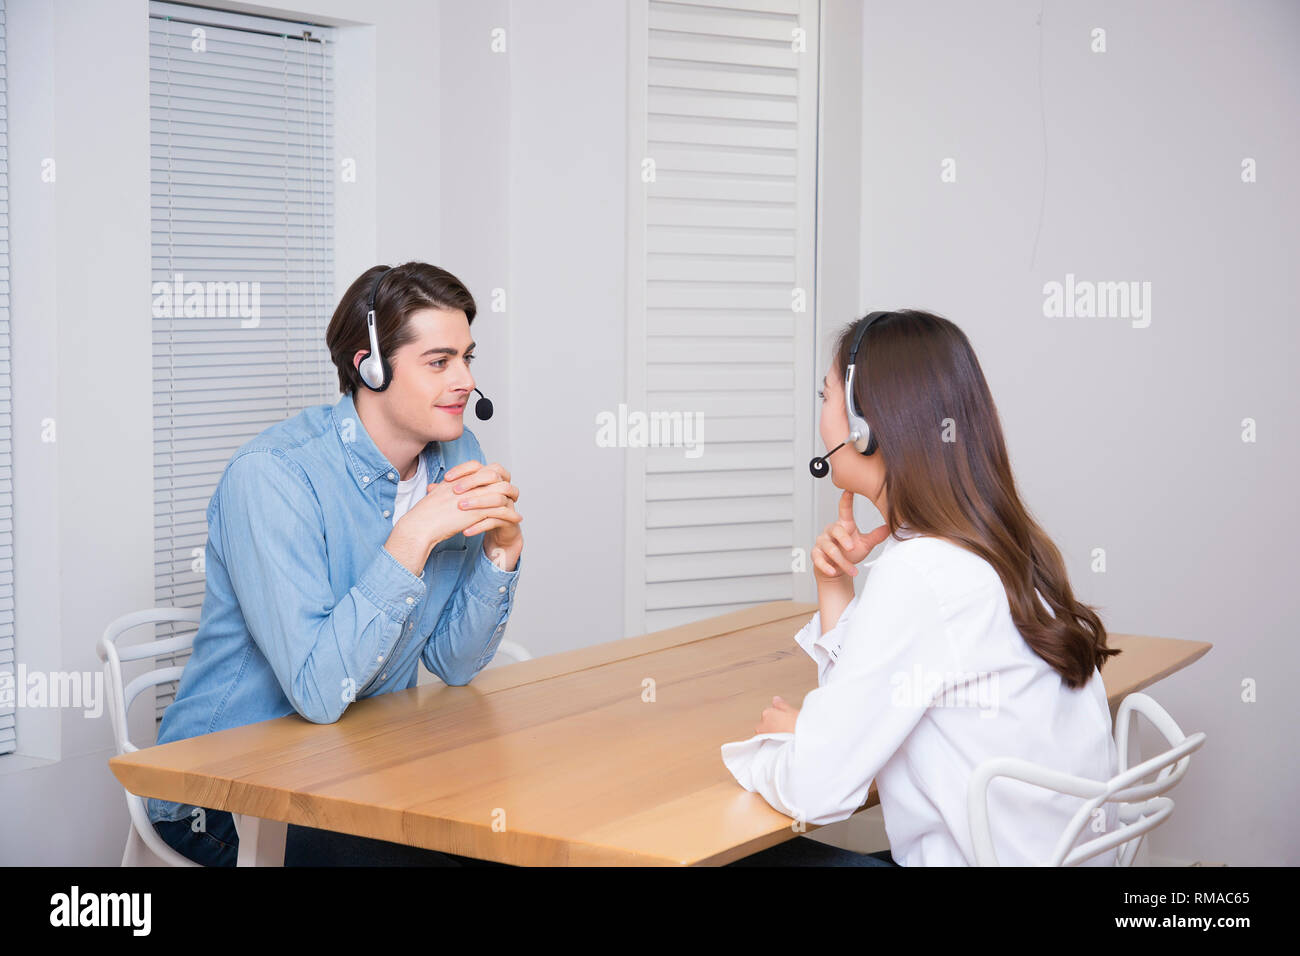 Conceptual photo study another foreign language on/off line verbal courses 054 - Stock Image